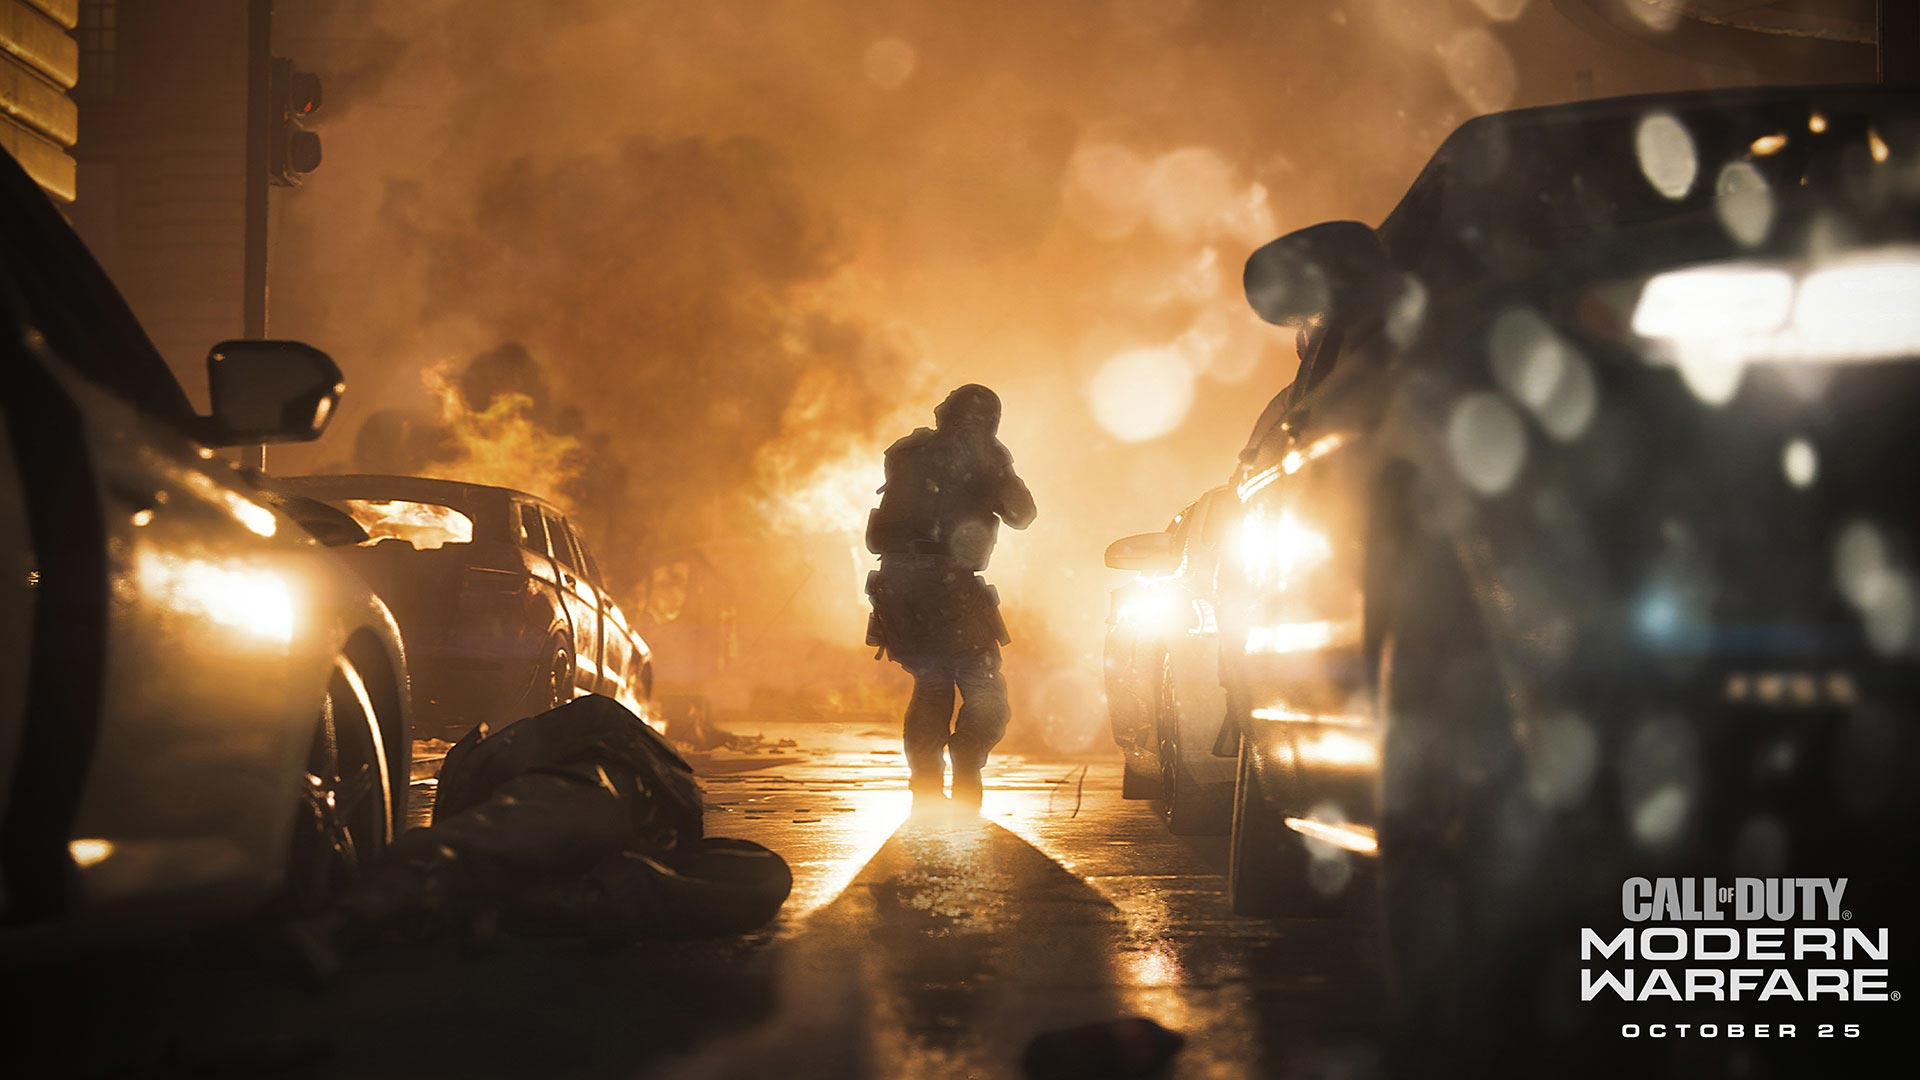 Call of Duty: Modern Warfare Explosion